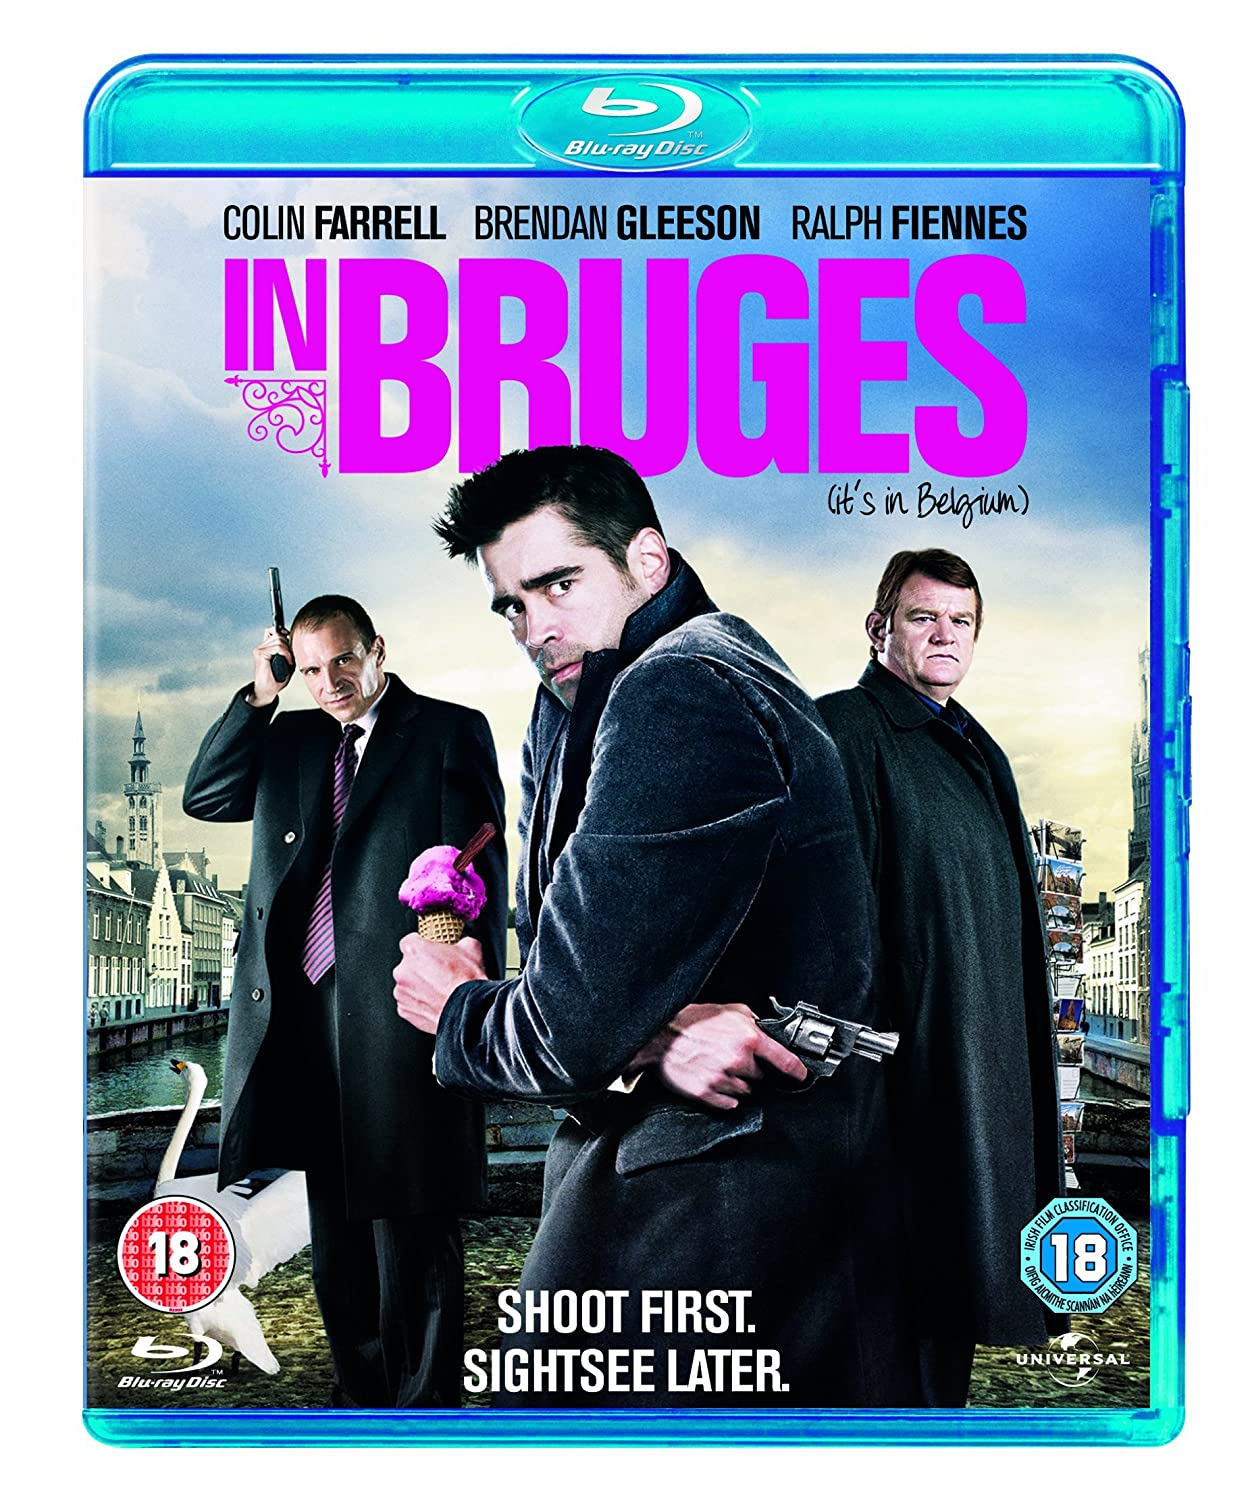 in bruges blu ray region amazon co uk colin farrell in bruges blu ray region amazon co uk colin farrell brendan gleason ralph fiennes martin mcdonagh dvd blu ray